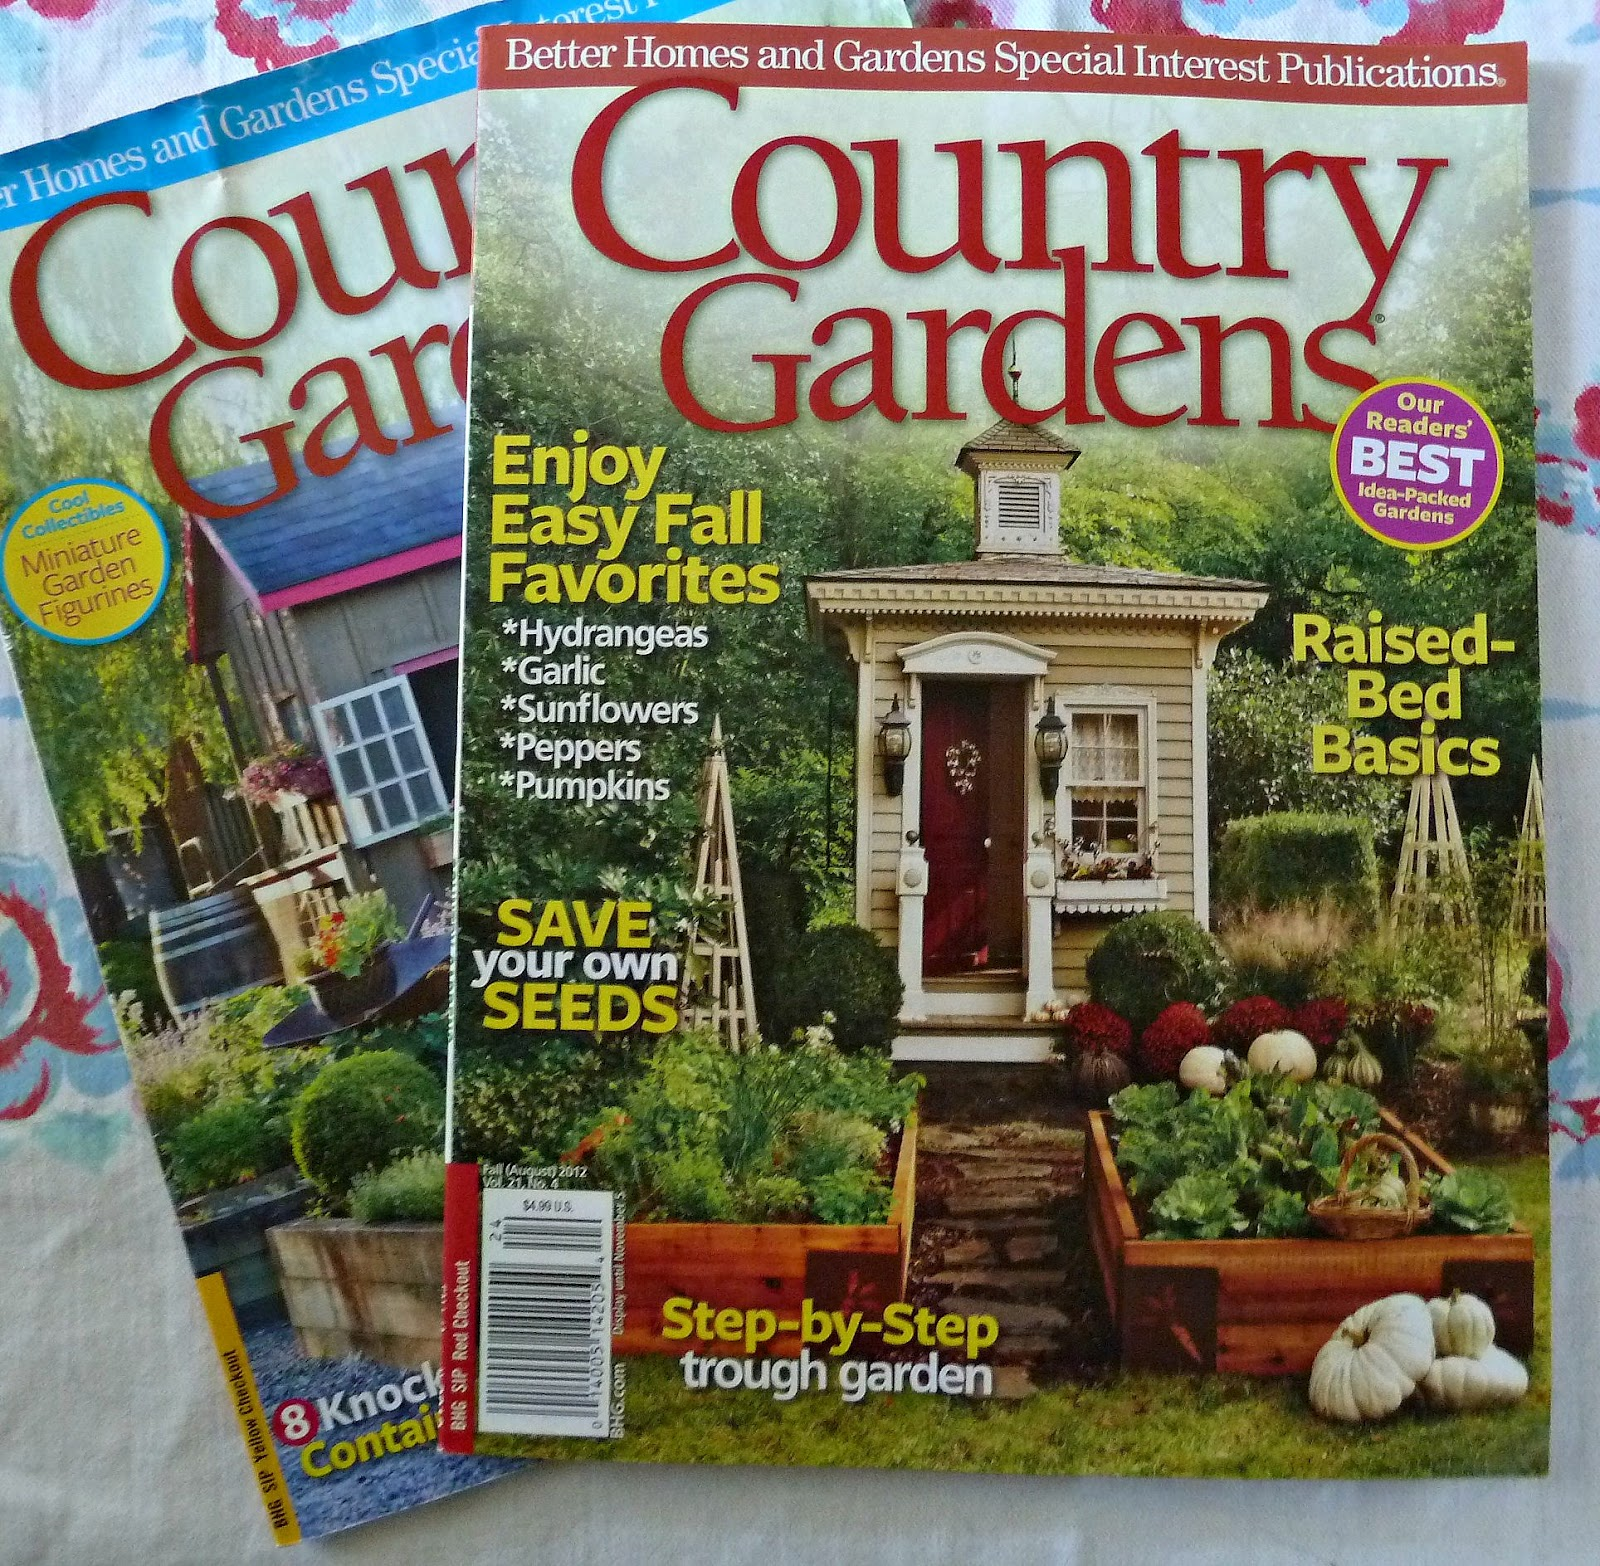 Old Glory Cottage: IN THE GARDEN